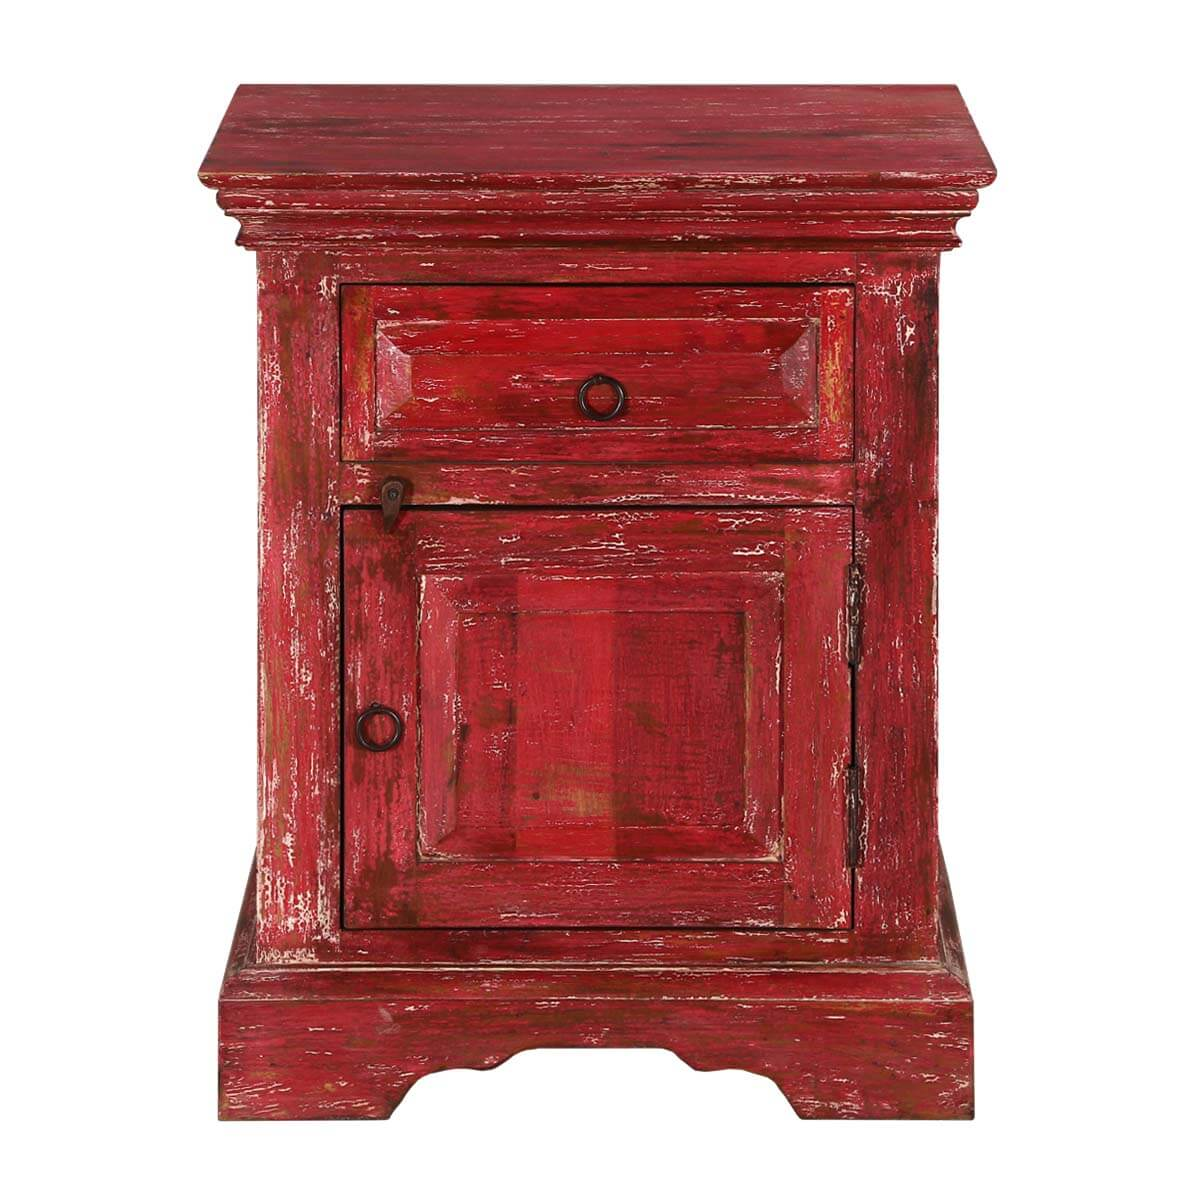 Firehouse Distressed Red Mango Wood 1 Drawer Nightstand Cabinet